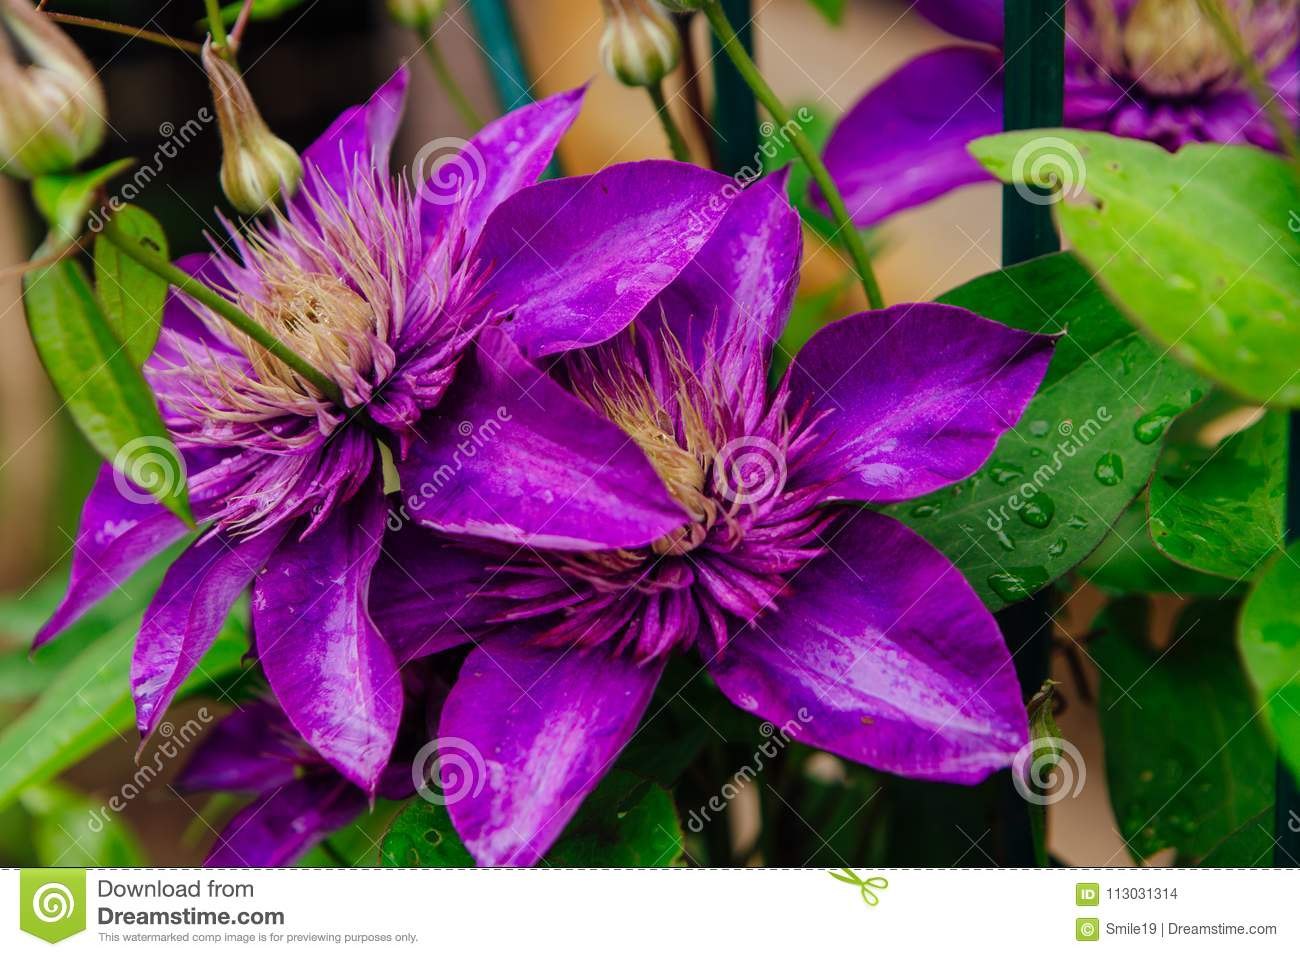 Big Purple Flowers Named Clematis Or President Flower After Rain